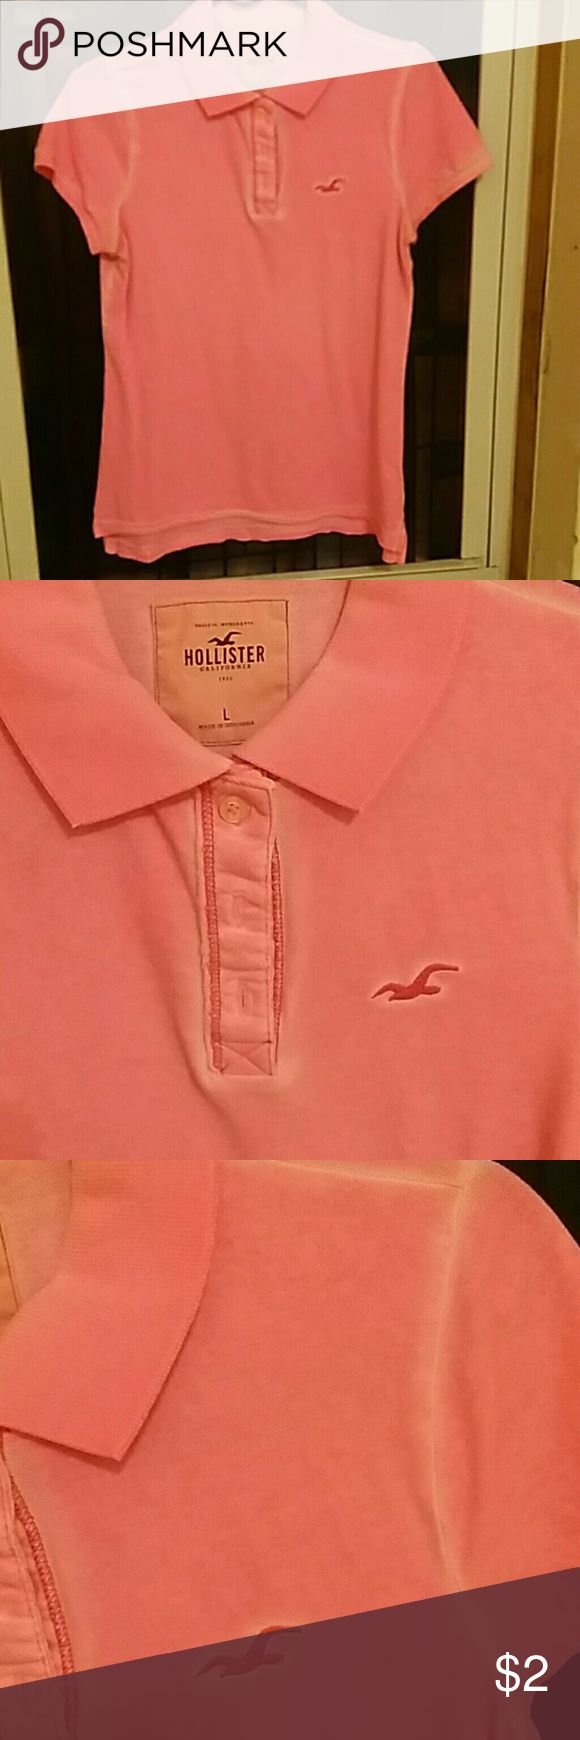 Hot pink polo shirt short sleeve stretchy cotton Purposefully faded on edges and seems brand new condition Hollister Tops Tees - Short Sleeve